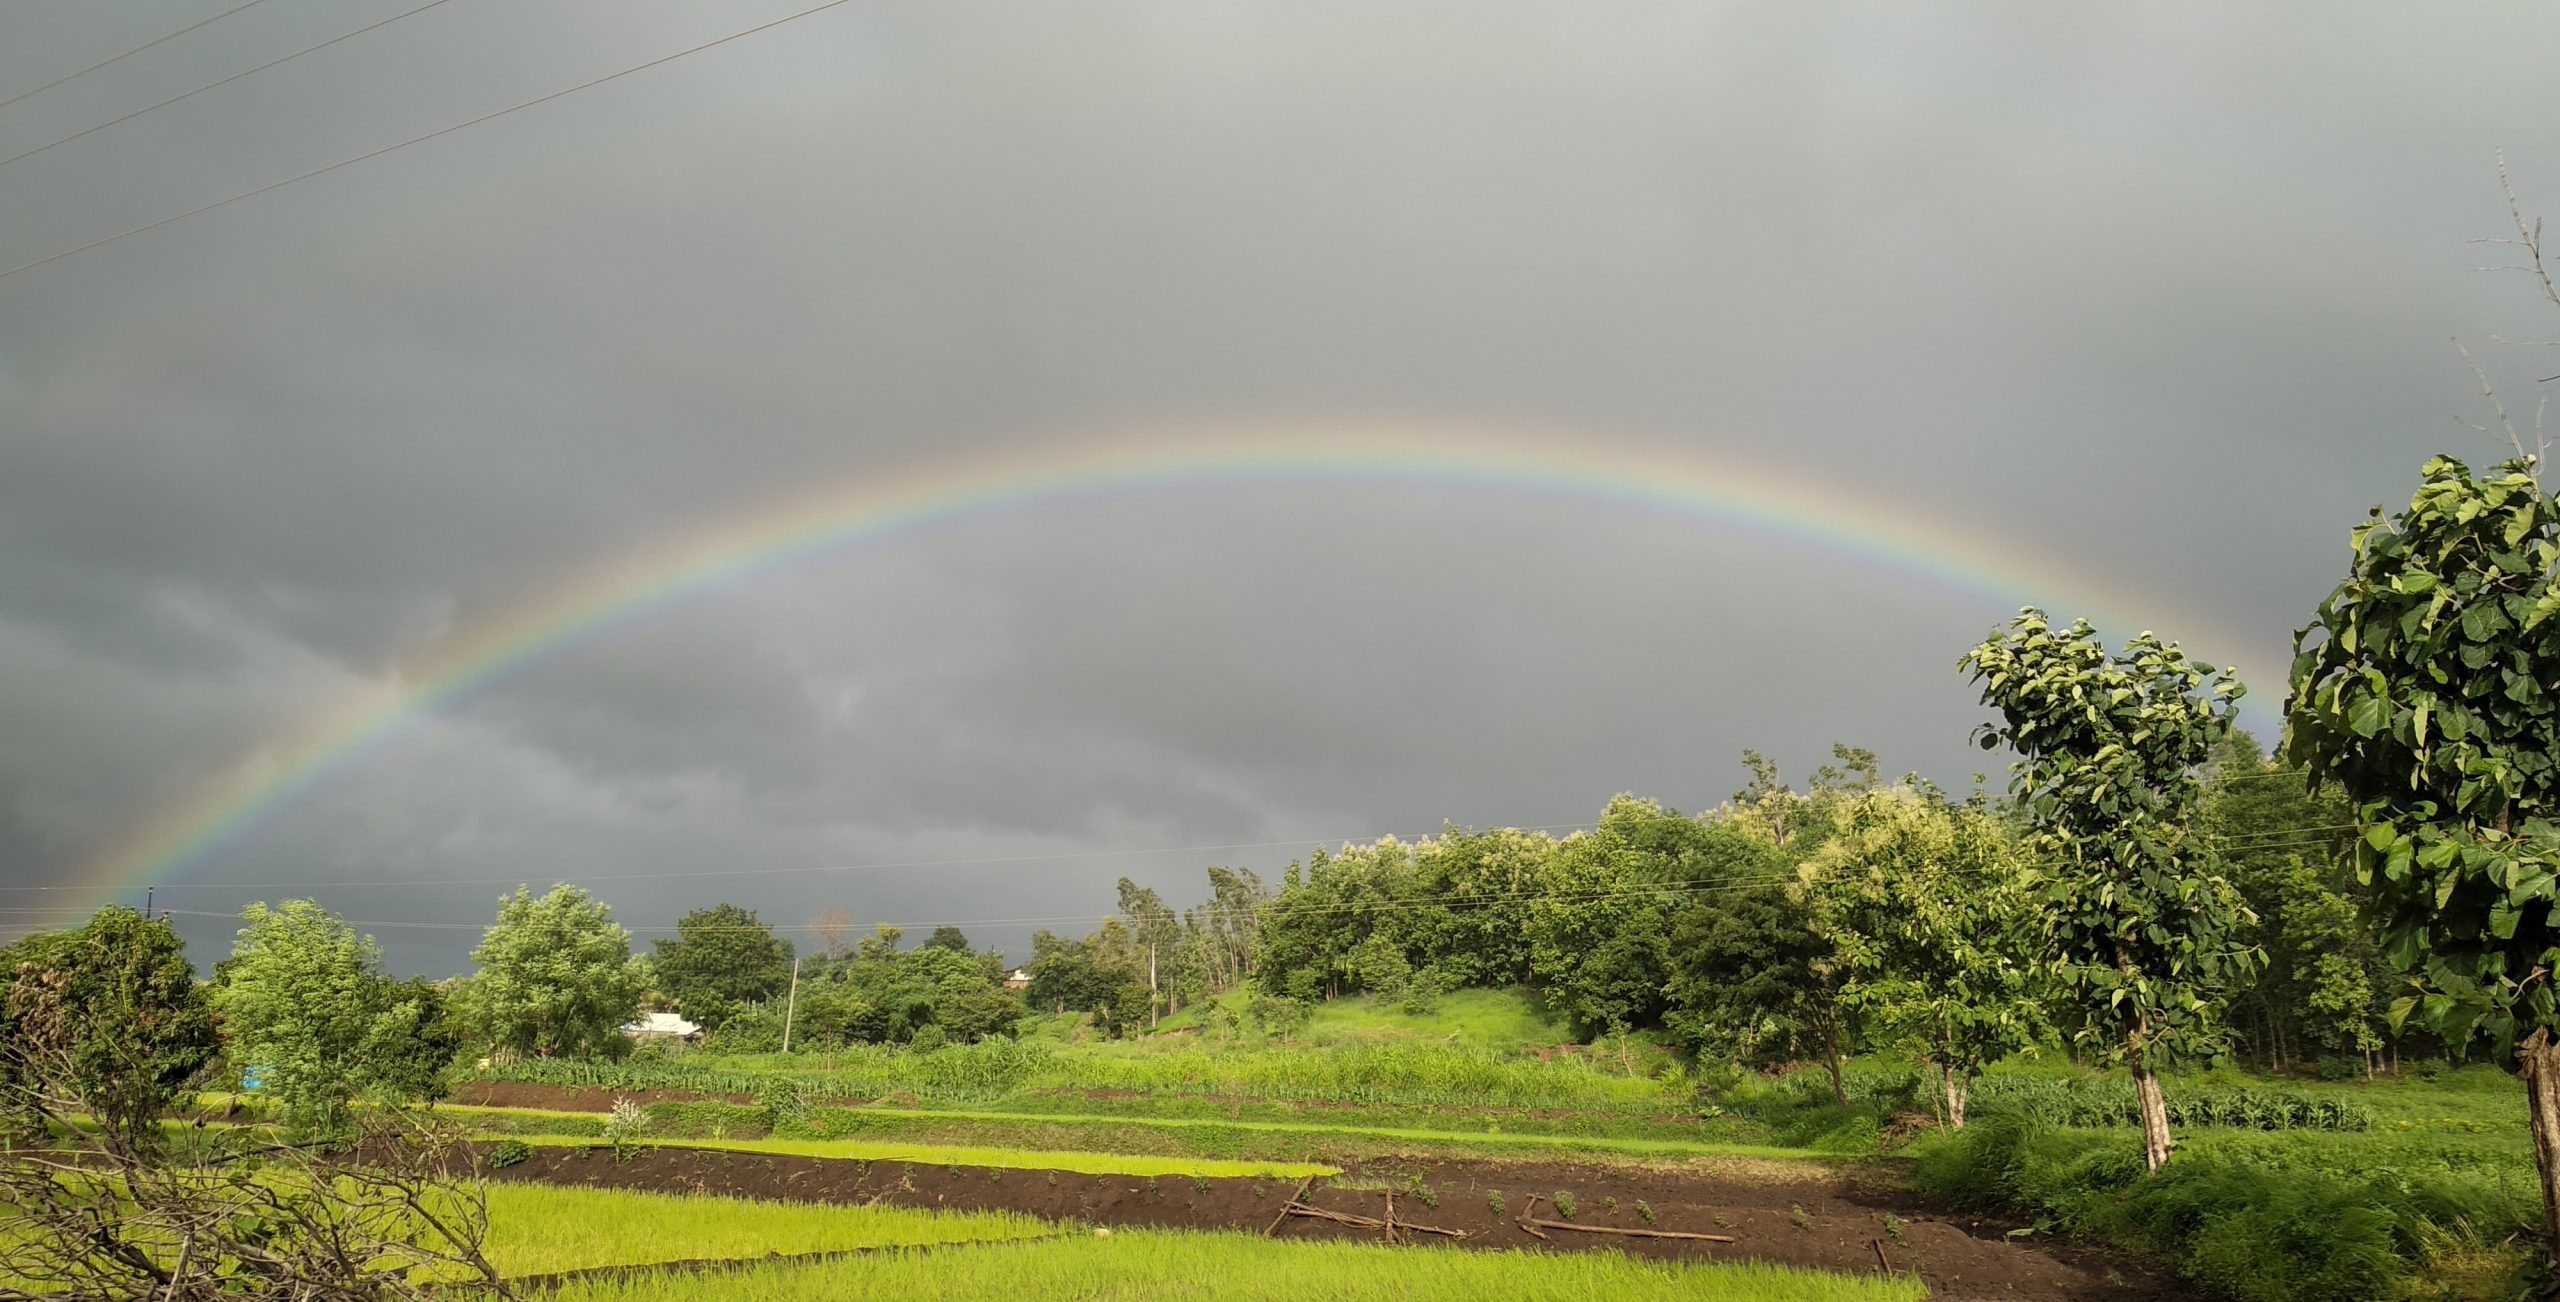 Rainbow formed over agriculture land